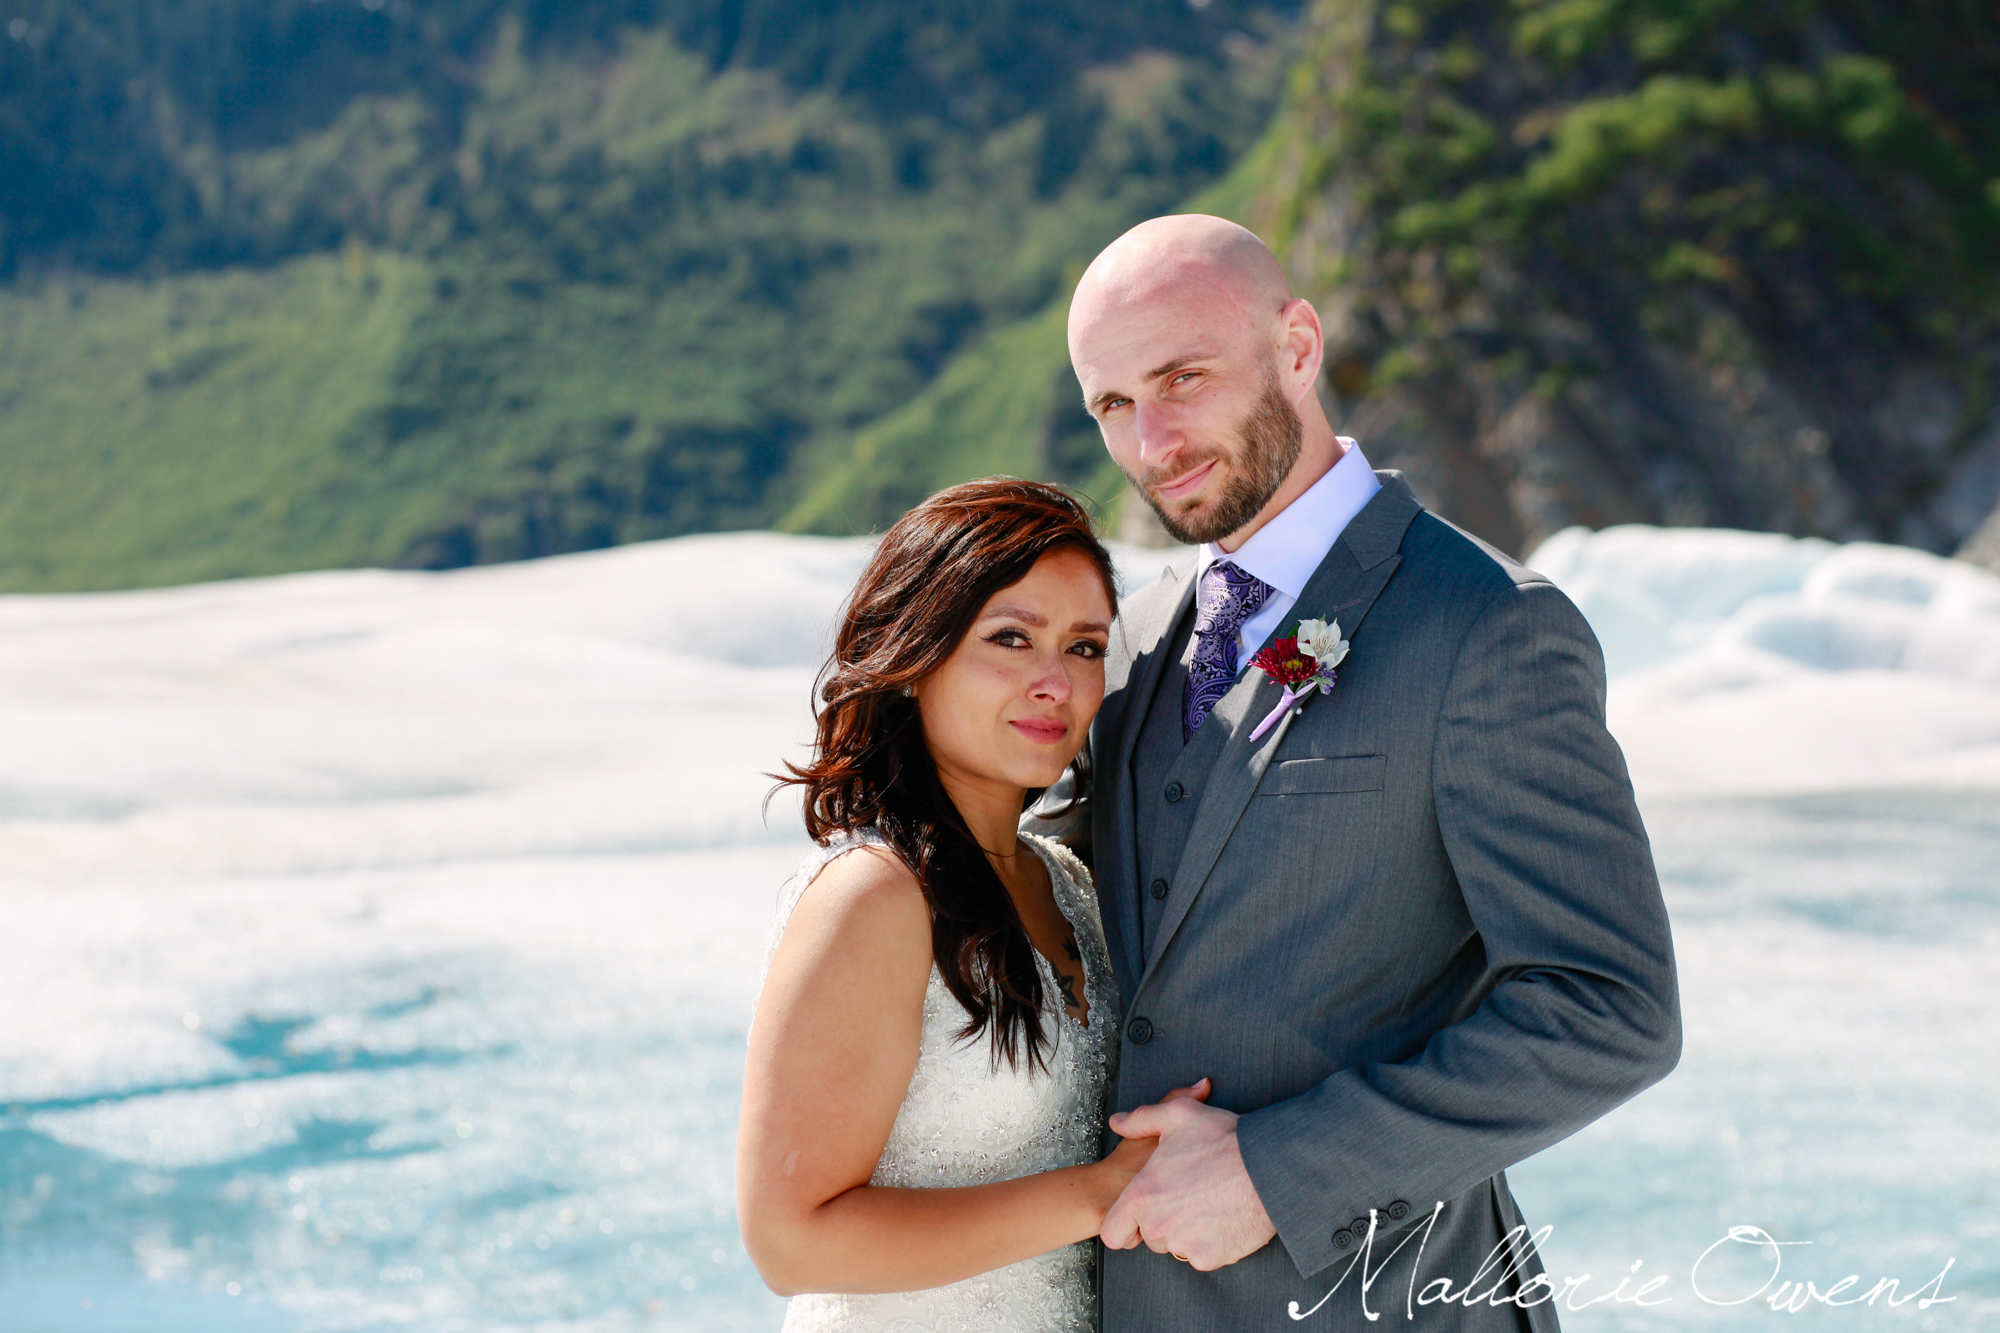 Wedding on Mendenhall Glacier in Juneau, Alaska | MALLORIE OWENS